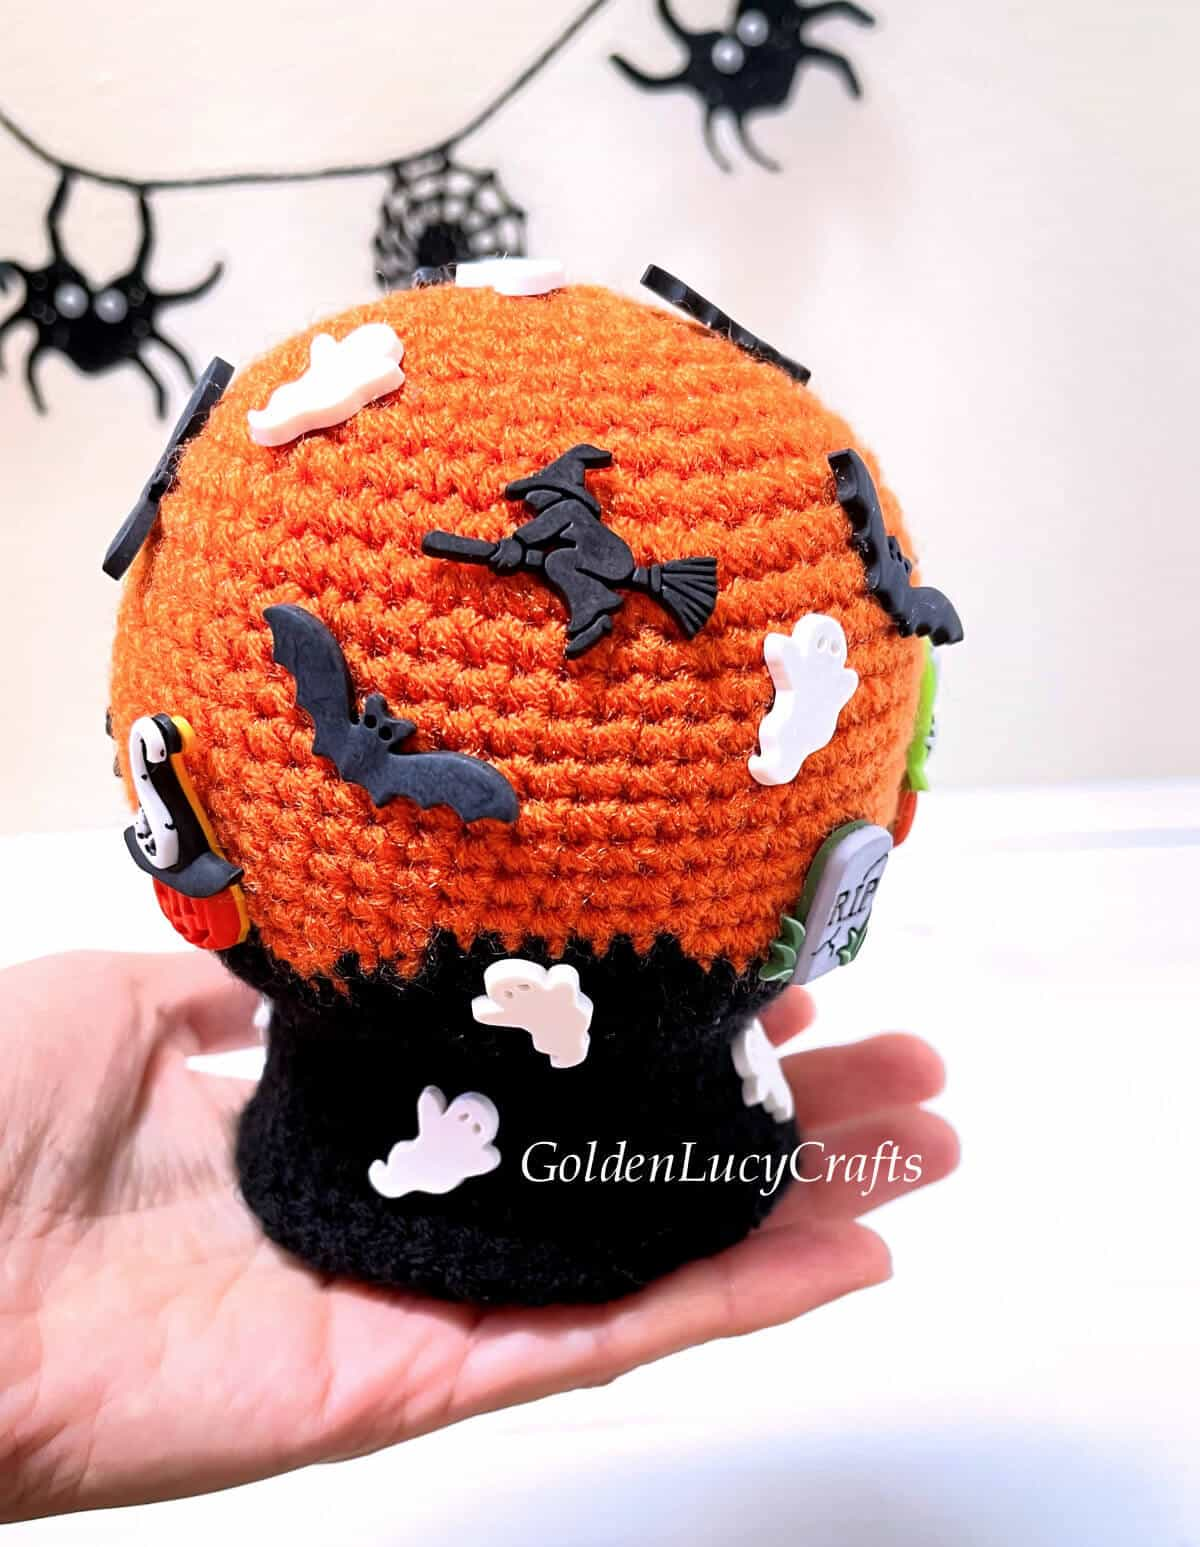 Crocheted Halloween snow globe in the palm of a hand.